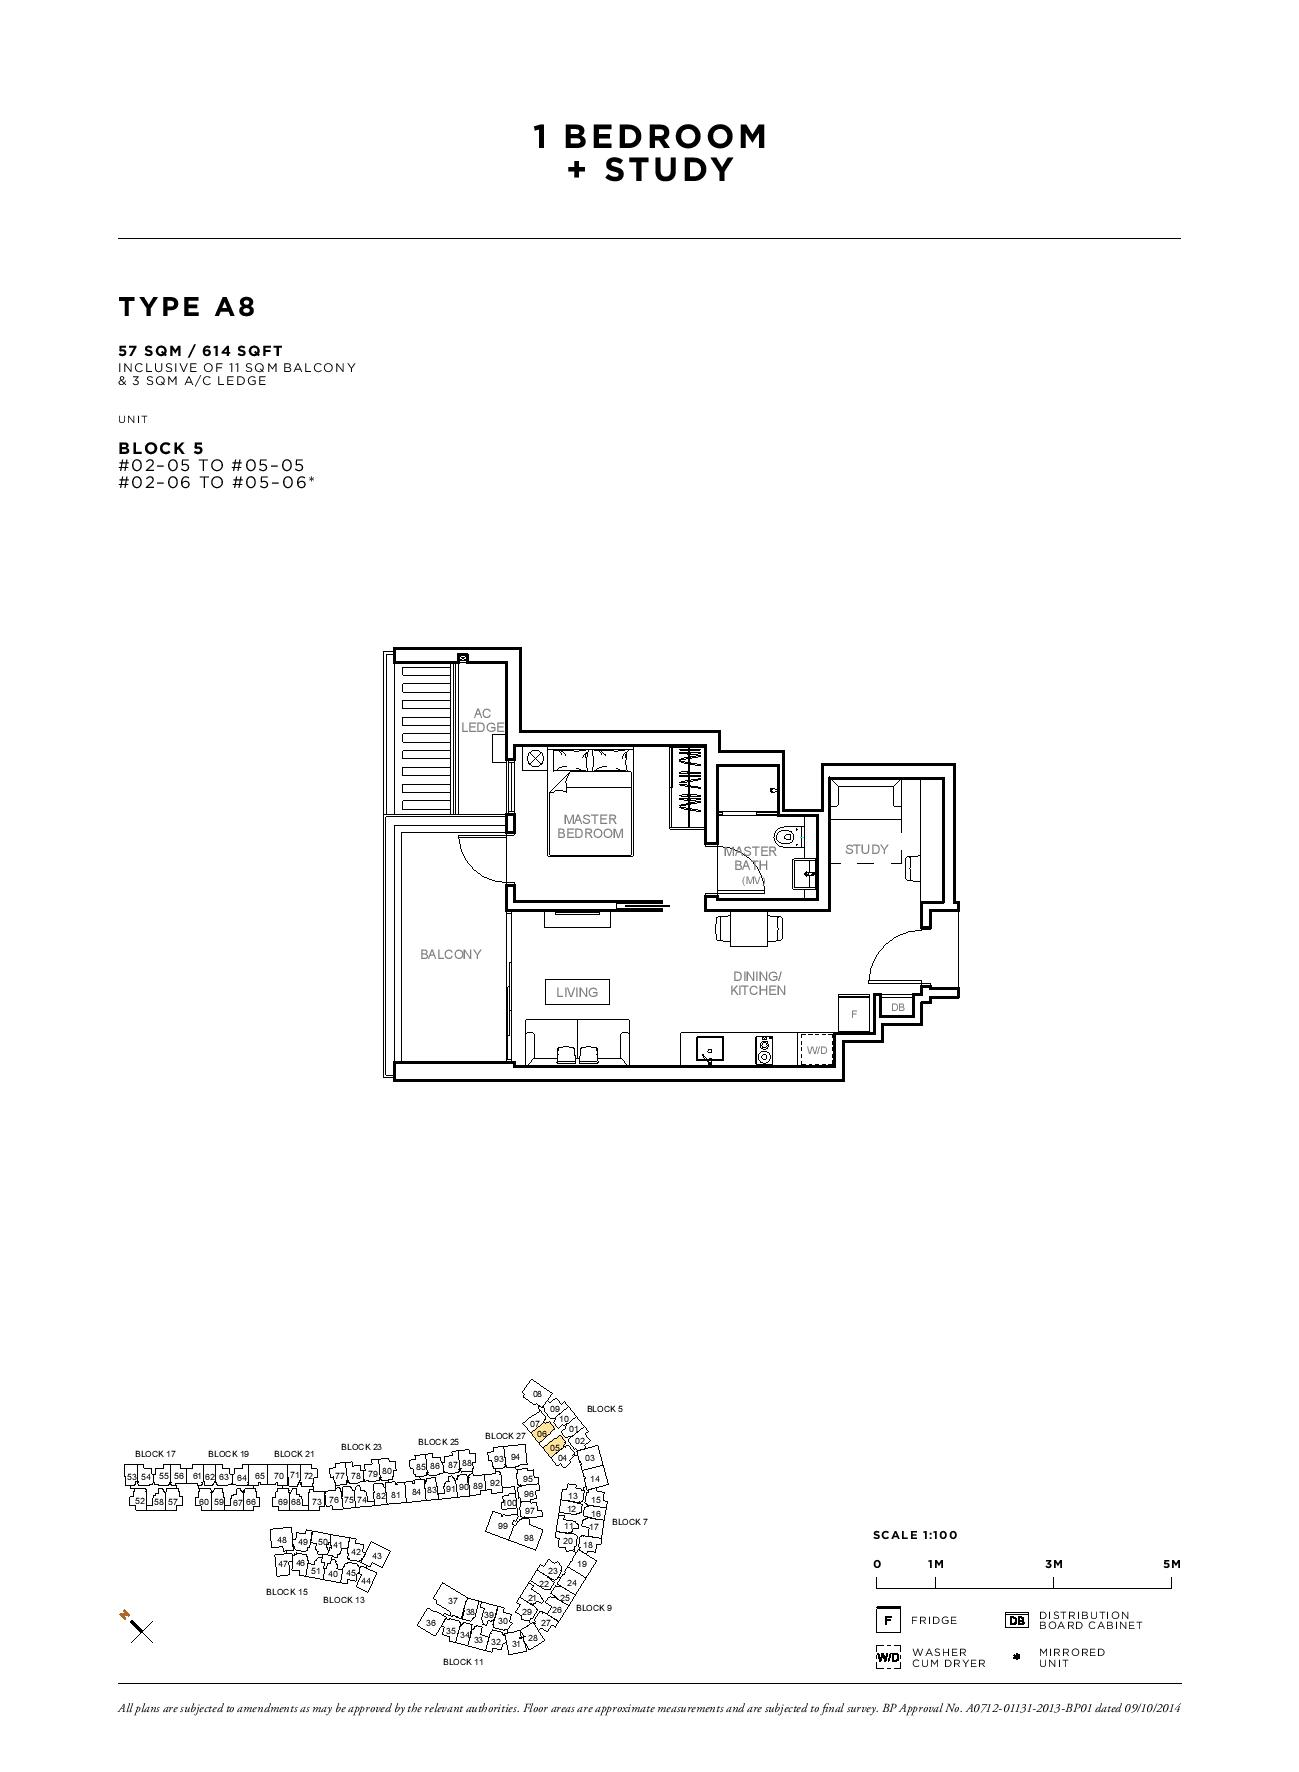 Sophia Hills 1 Bedroom + Study Type A8 Floor Plans